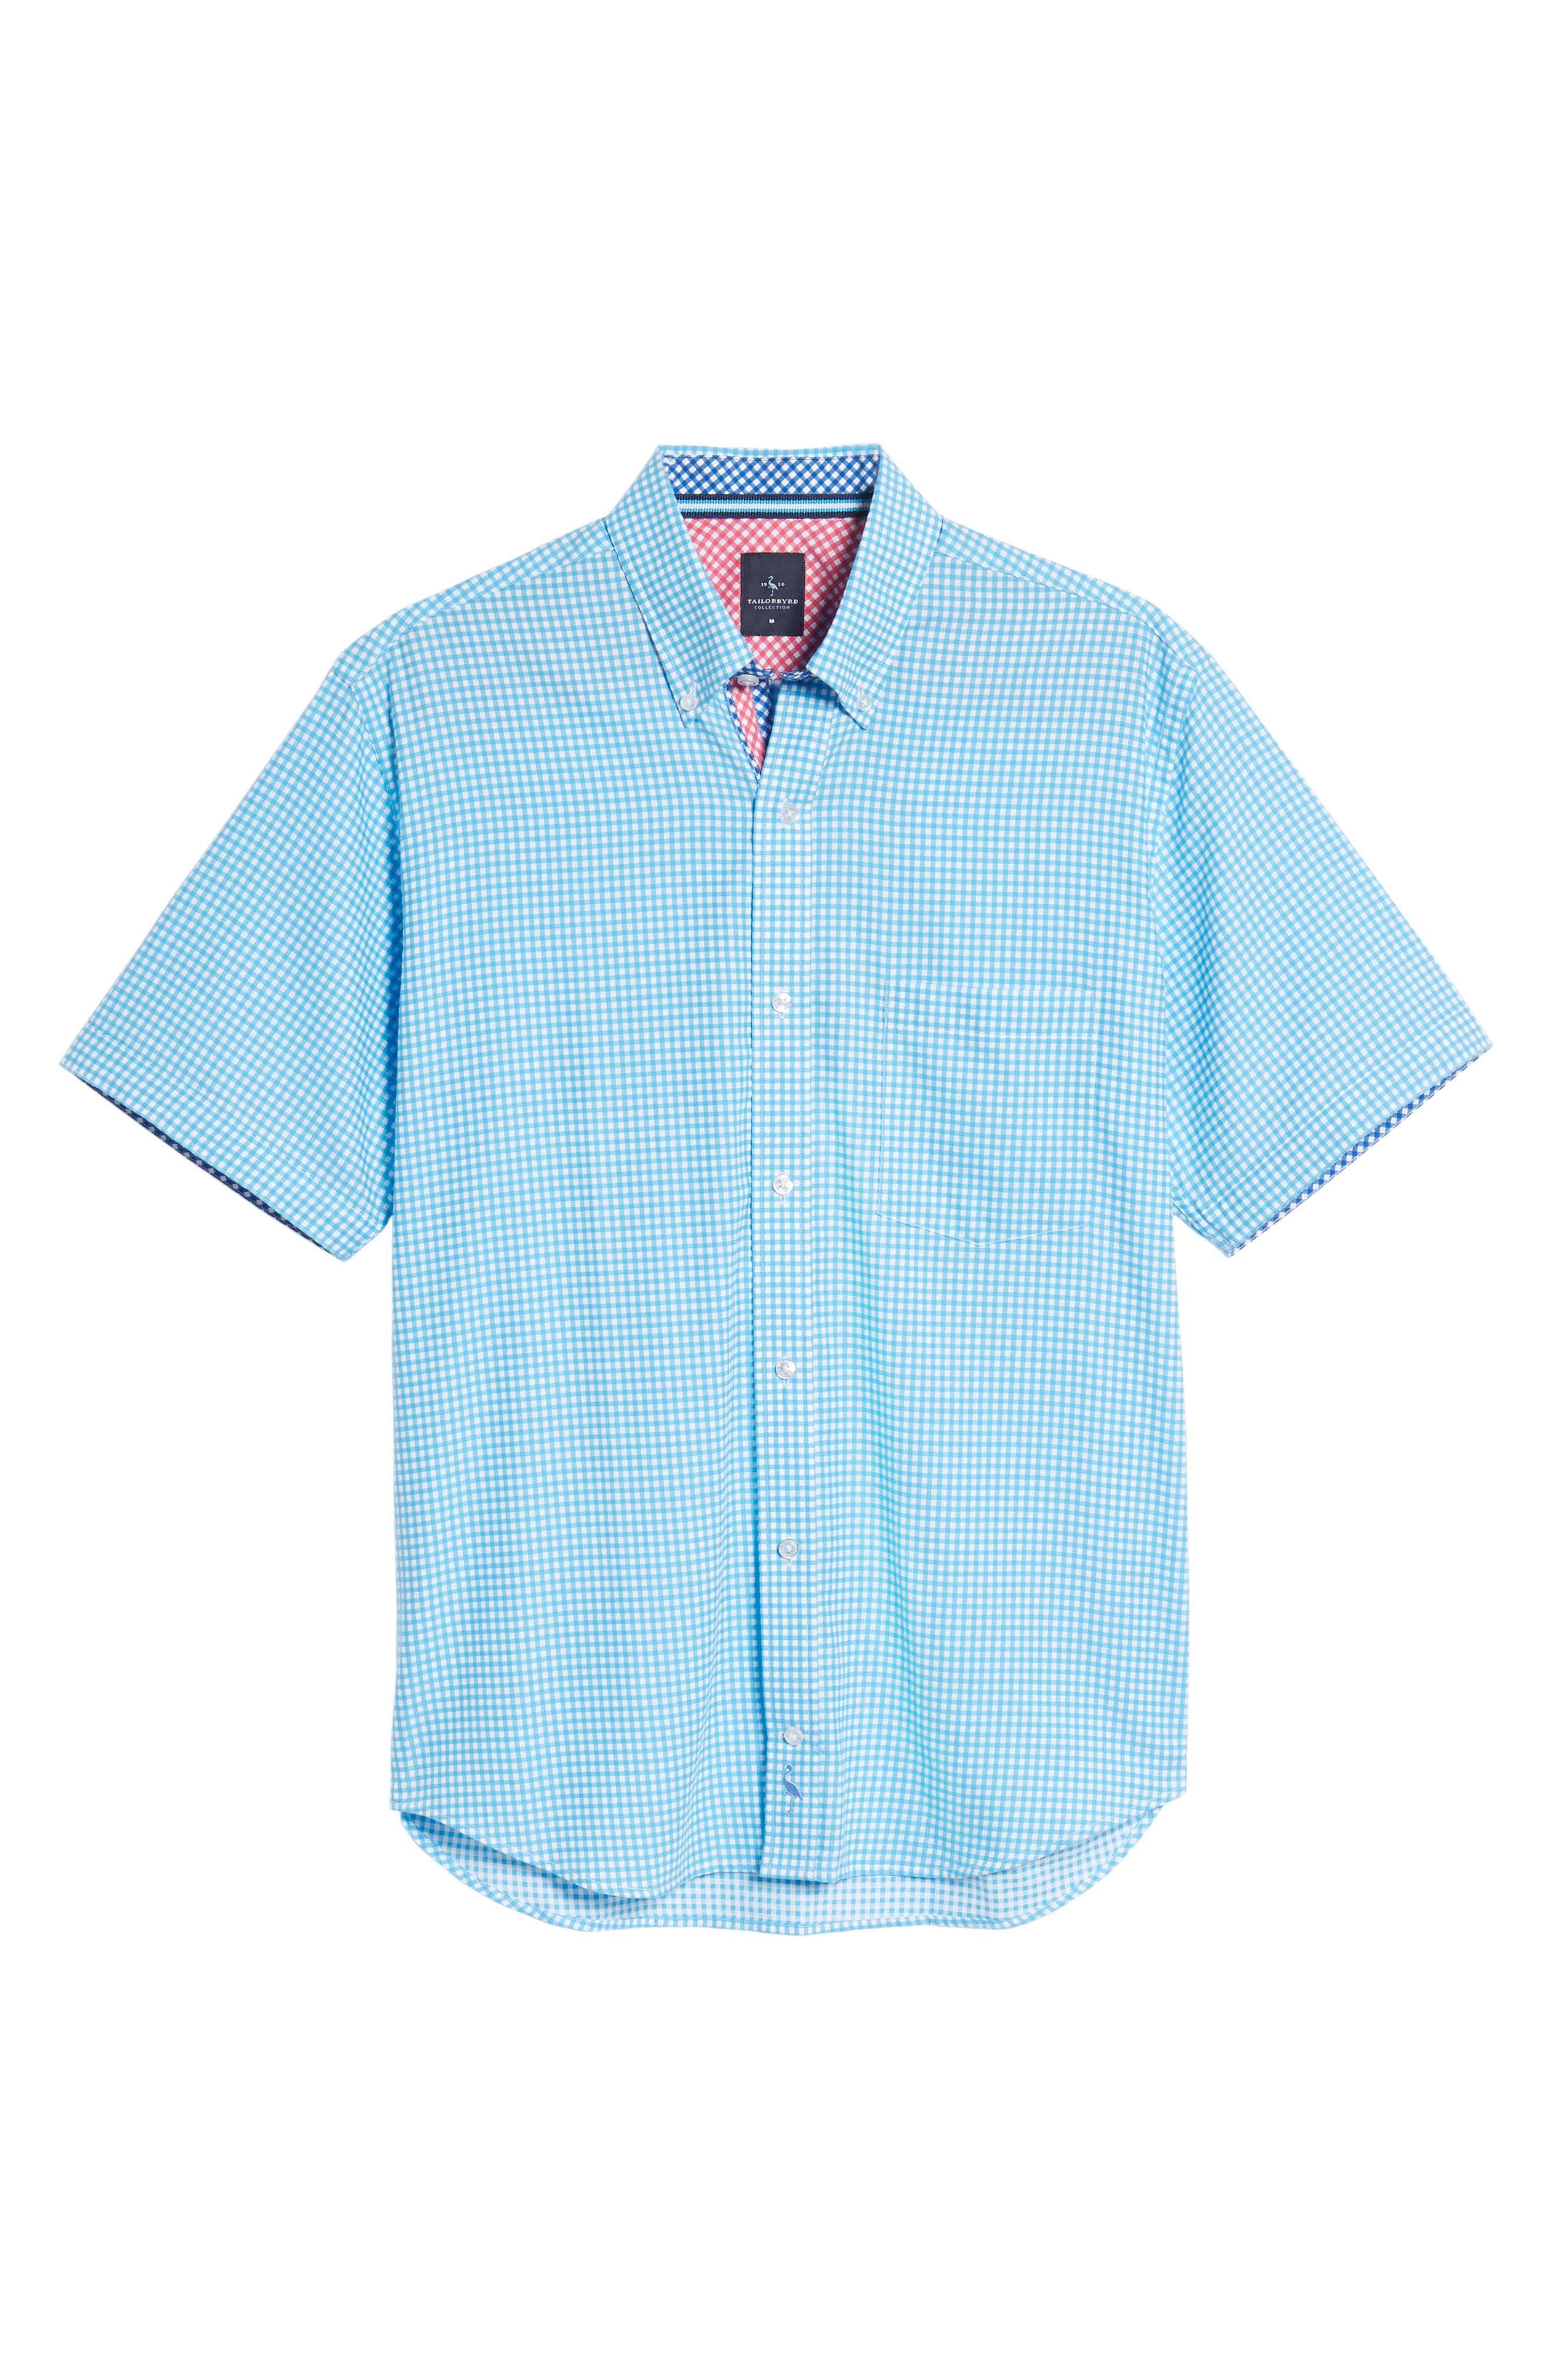 TailorByrd Aden Regular Fit Sport Shirt Fast Express Cheap Sale From China Sale View HSueIL